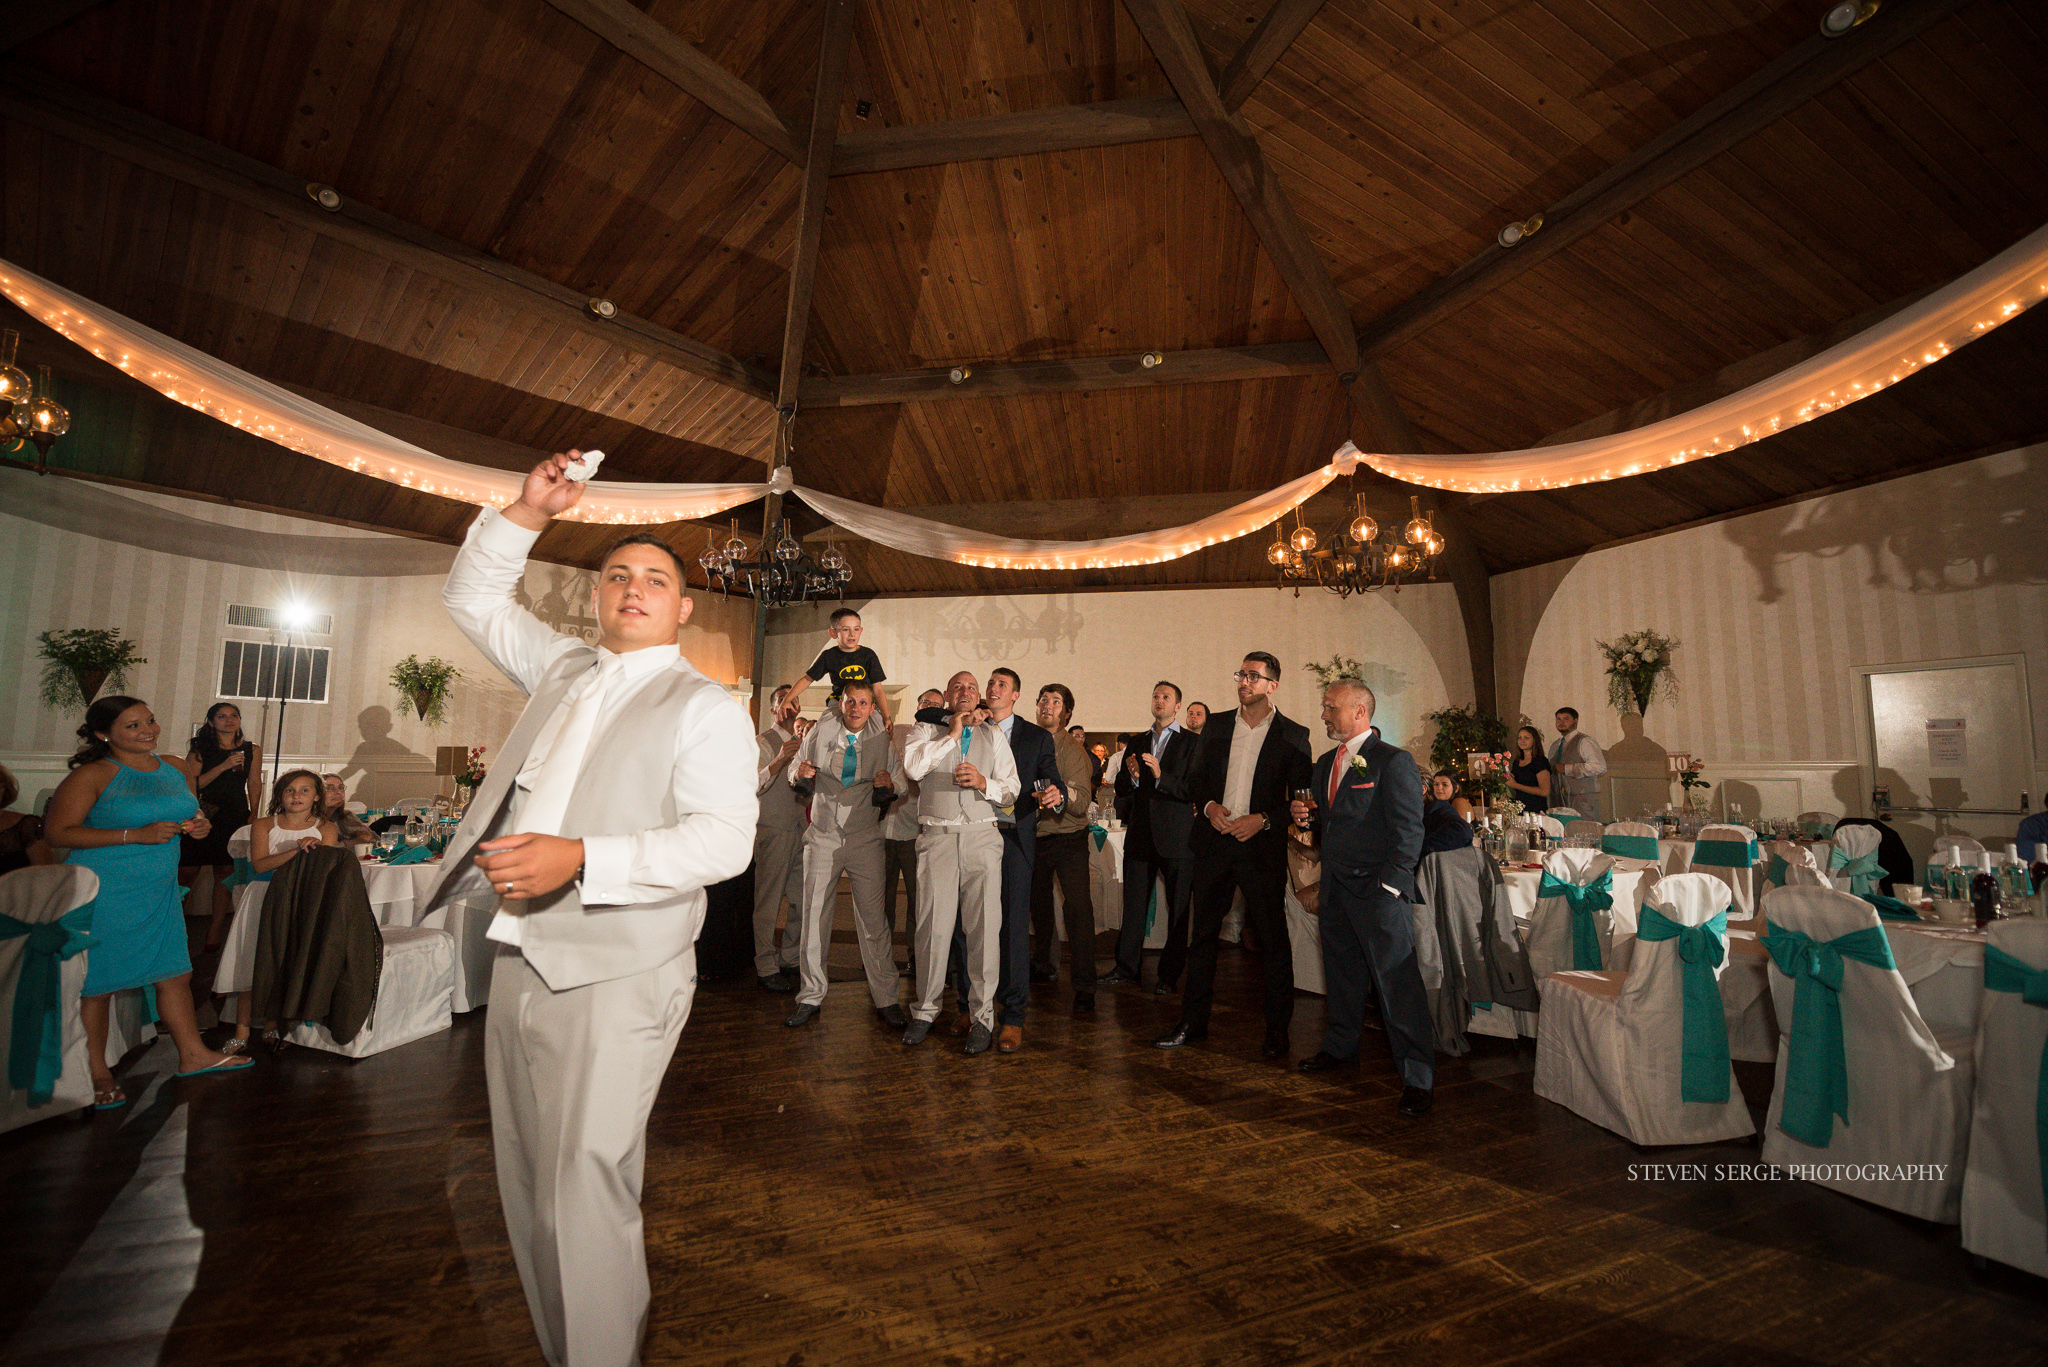 Clarks-Summit-PA-NEPA-Wedding-Photographer-Inn-Abingtons-Party-photography-steven-serge-55.jpg